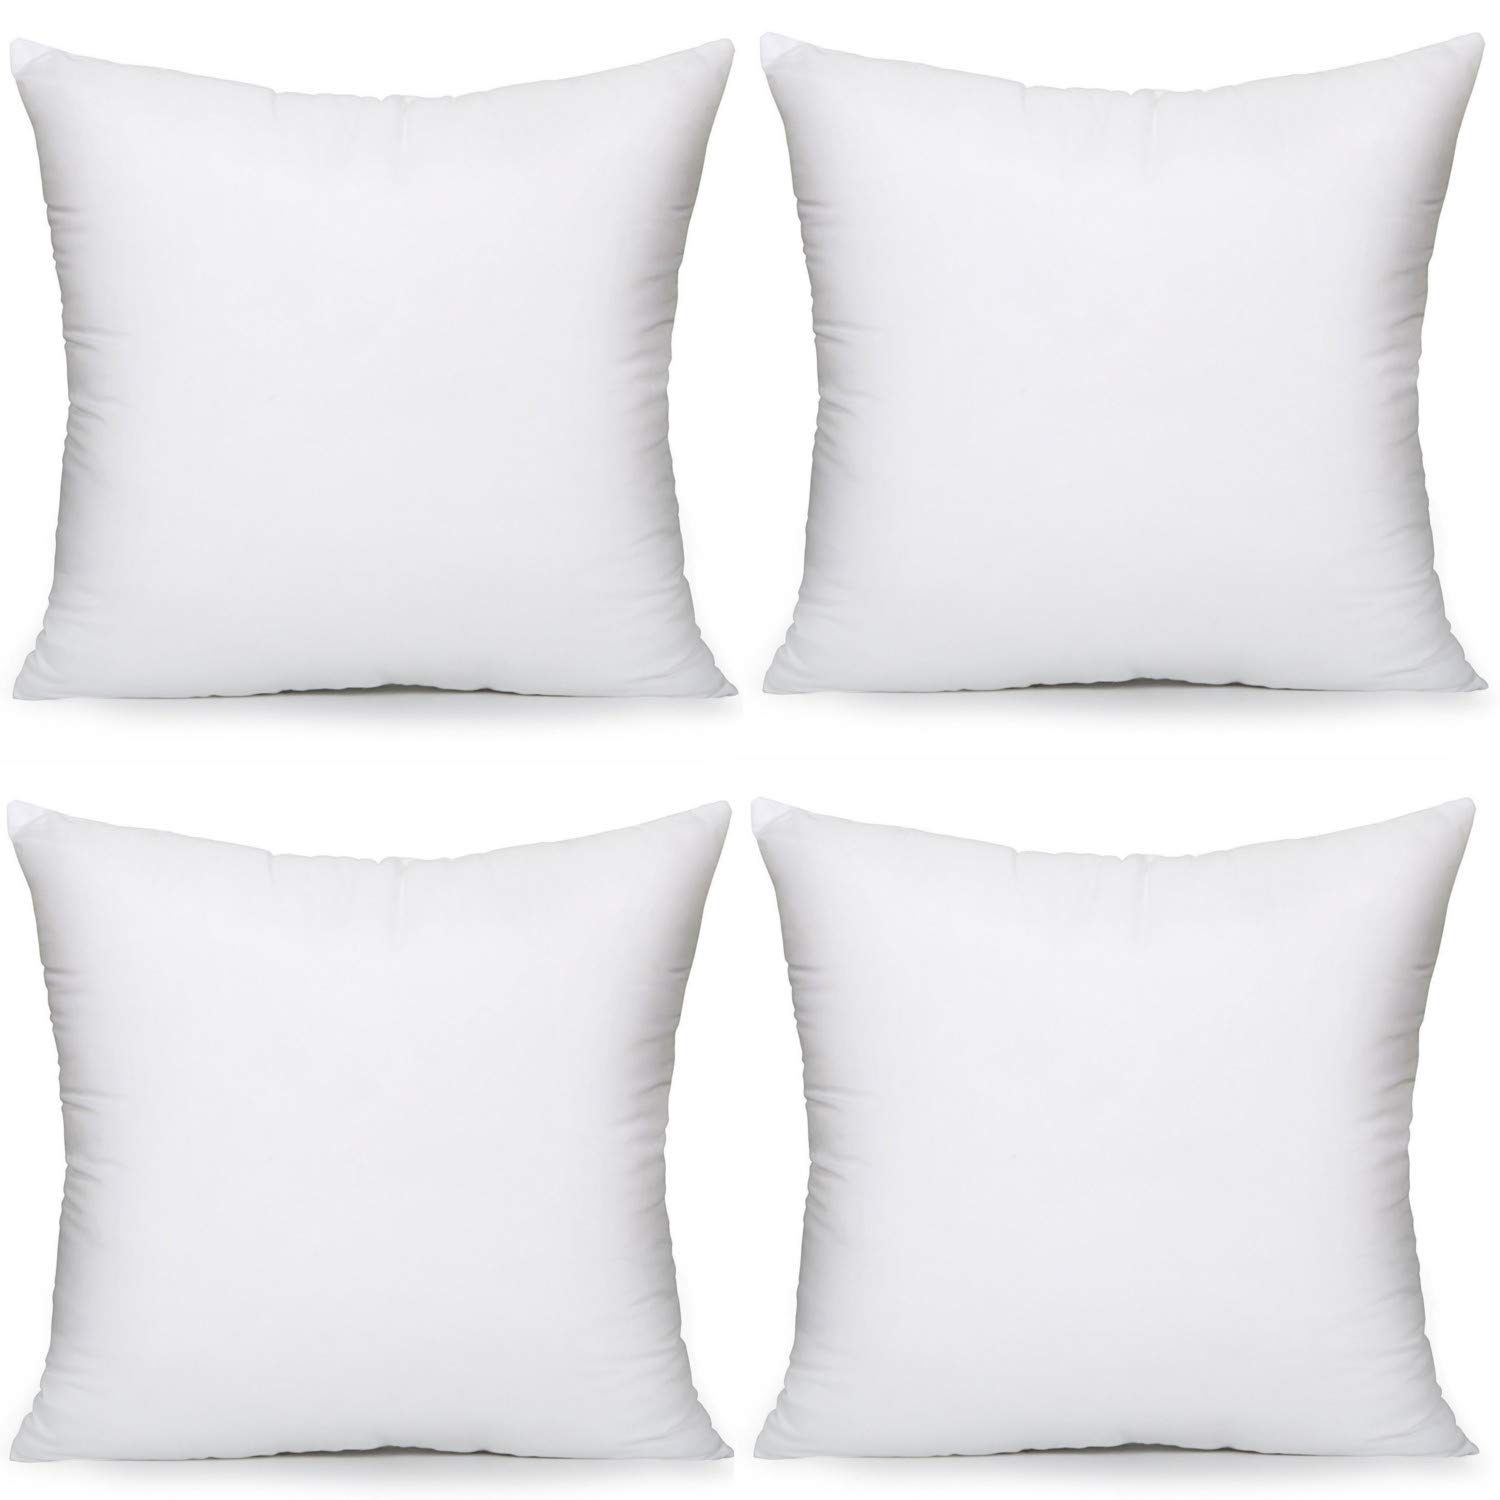 MoonRest - Pack of 4 - Synthetic Down Pillow Insert, Square Pillow Form, Sham Stuffing for Decorative Throw Pillow Covers, Sofa Couch Cushion and Bed - Set of Four 22'' X 22''